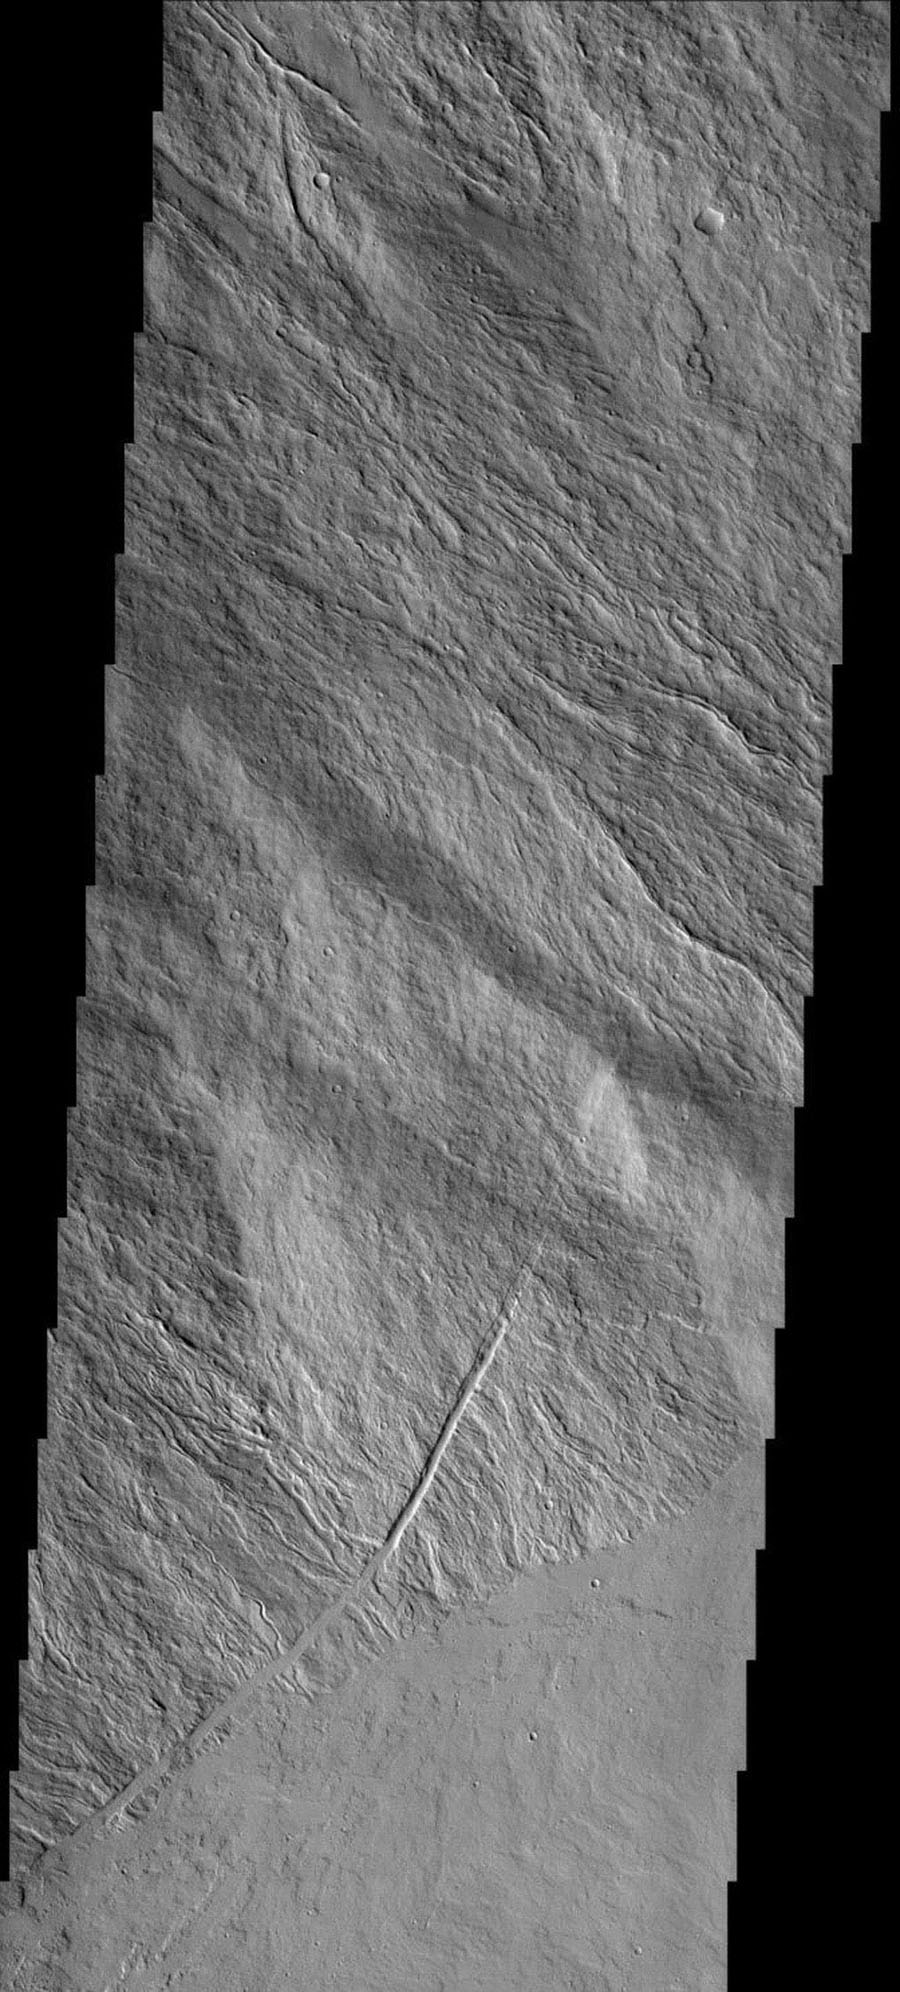 This image shows part of the flank and margin of Ascraeus Mons on Mars as seen by NASA's 2001 Mars Odyssey spacecraft.